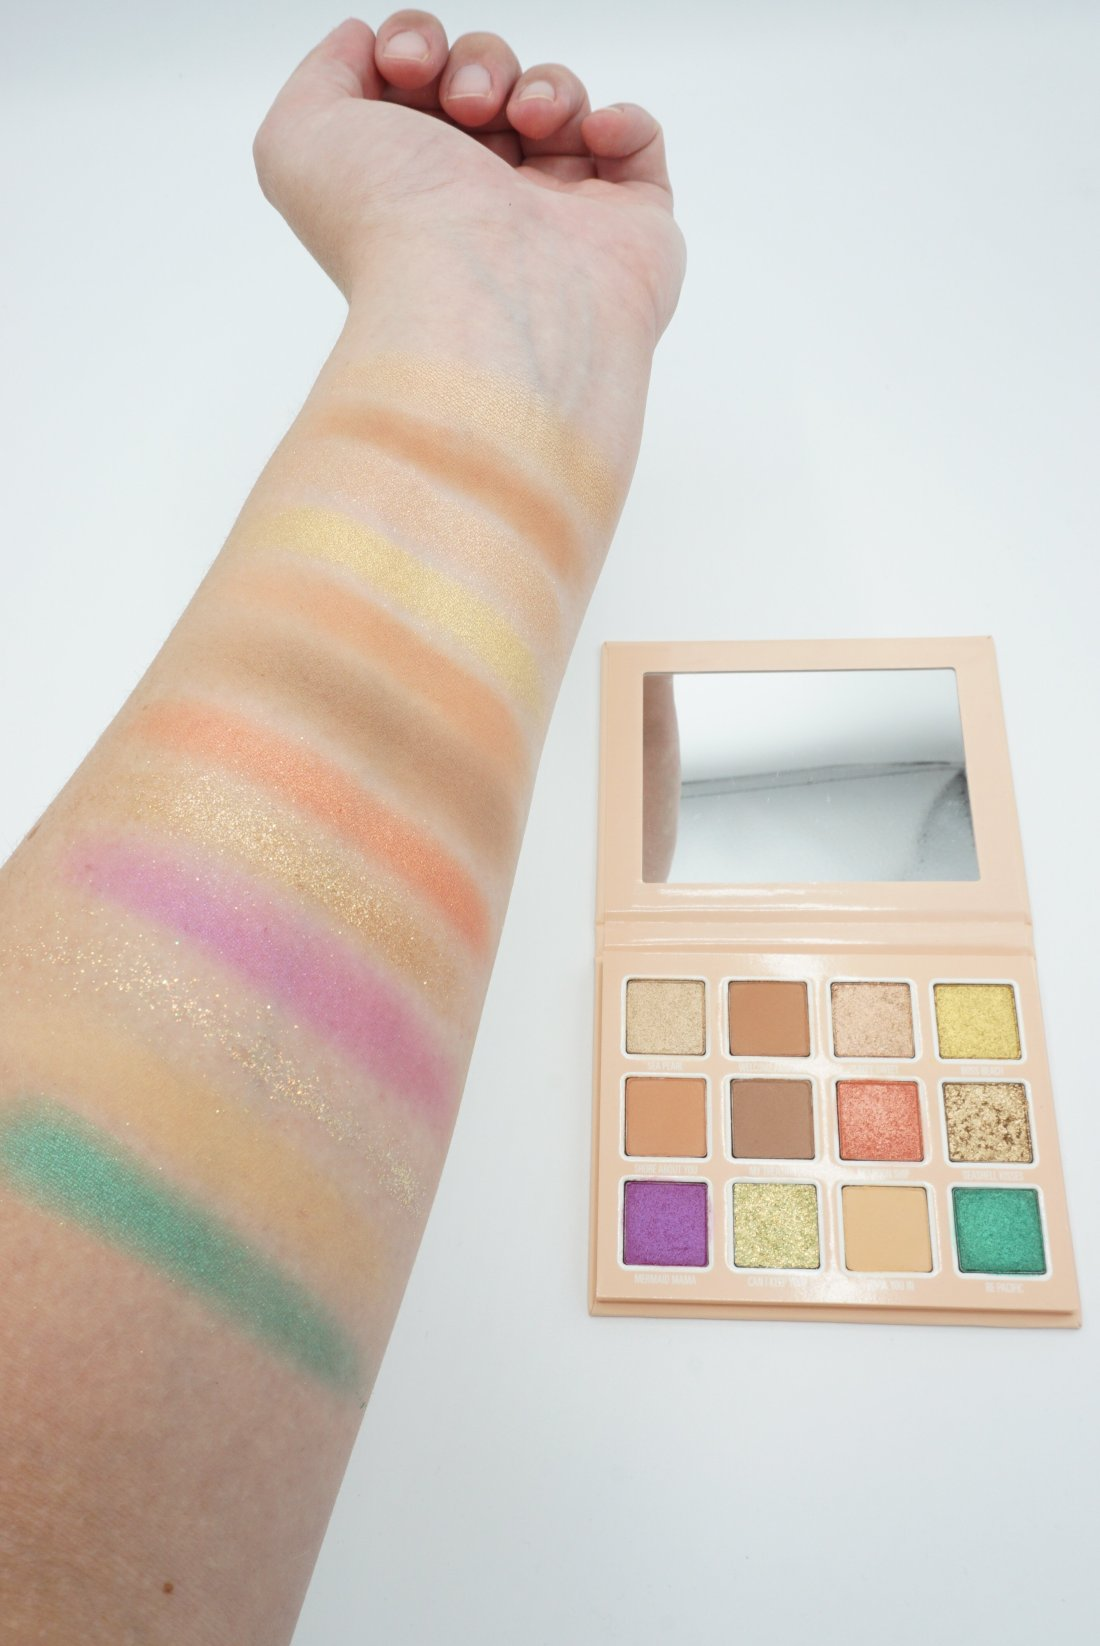 Kylie Cosmetics Summer 2019 Collection - Under The Sea Eyeshadow Palette Swatches | Review